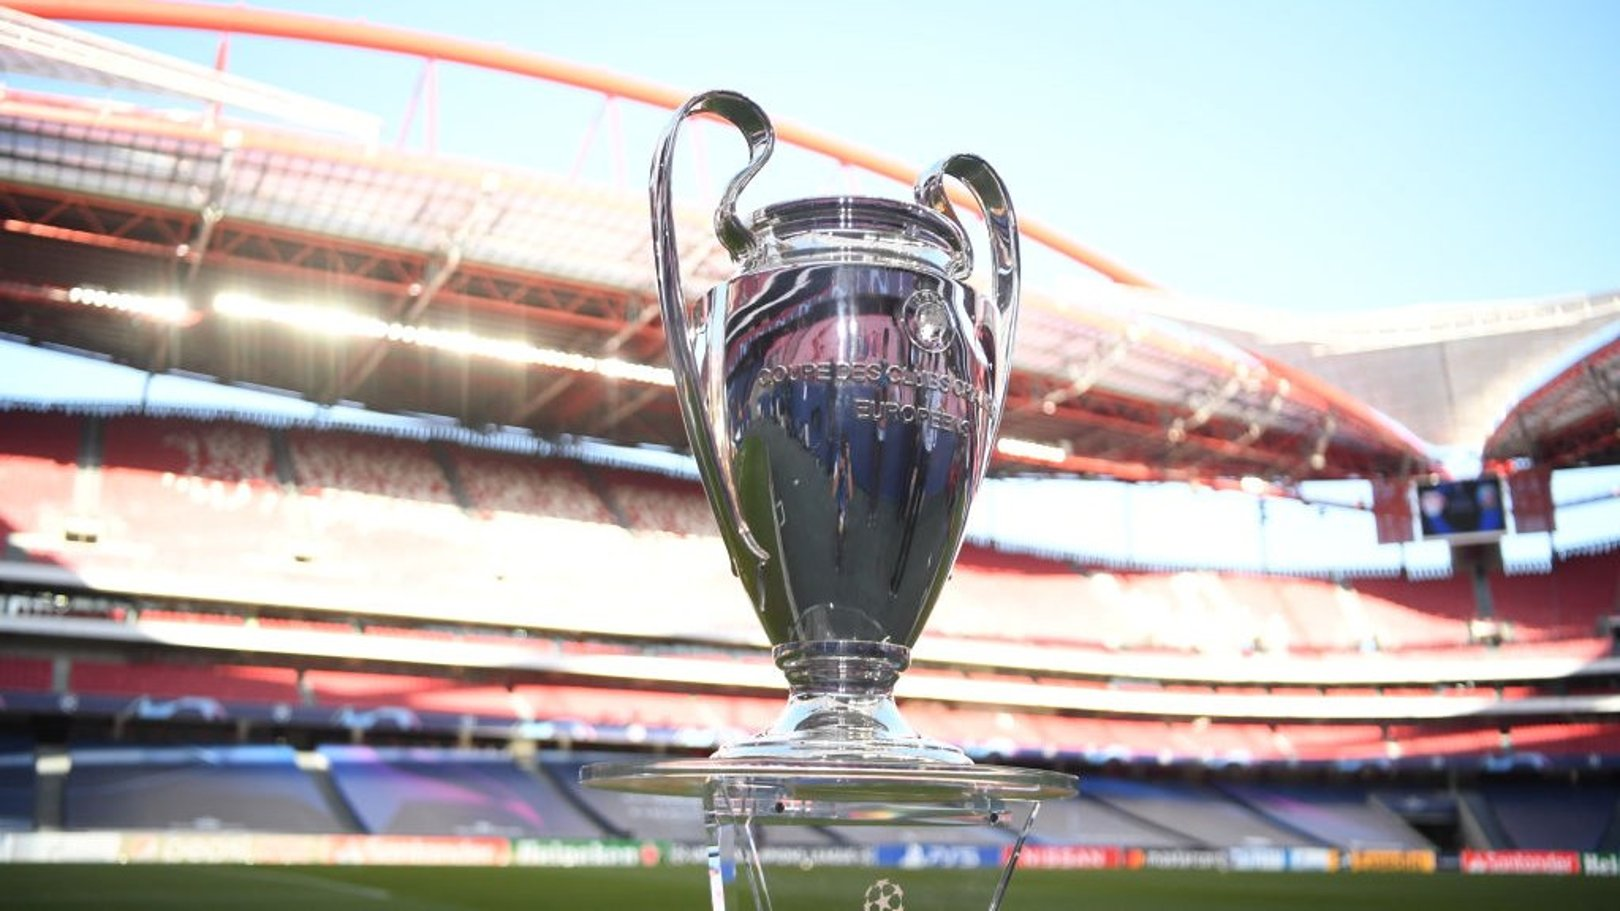 UEFA Champions League Final: Ticket and travel statement